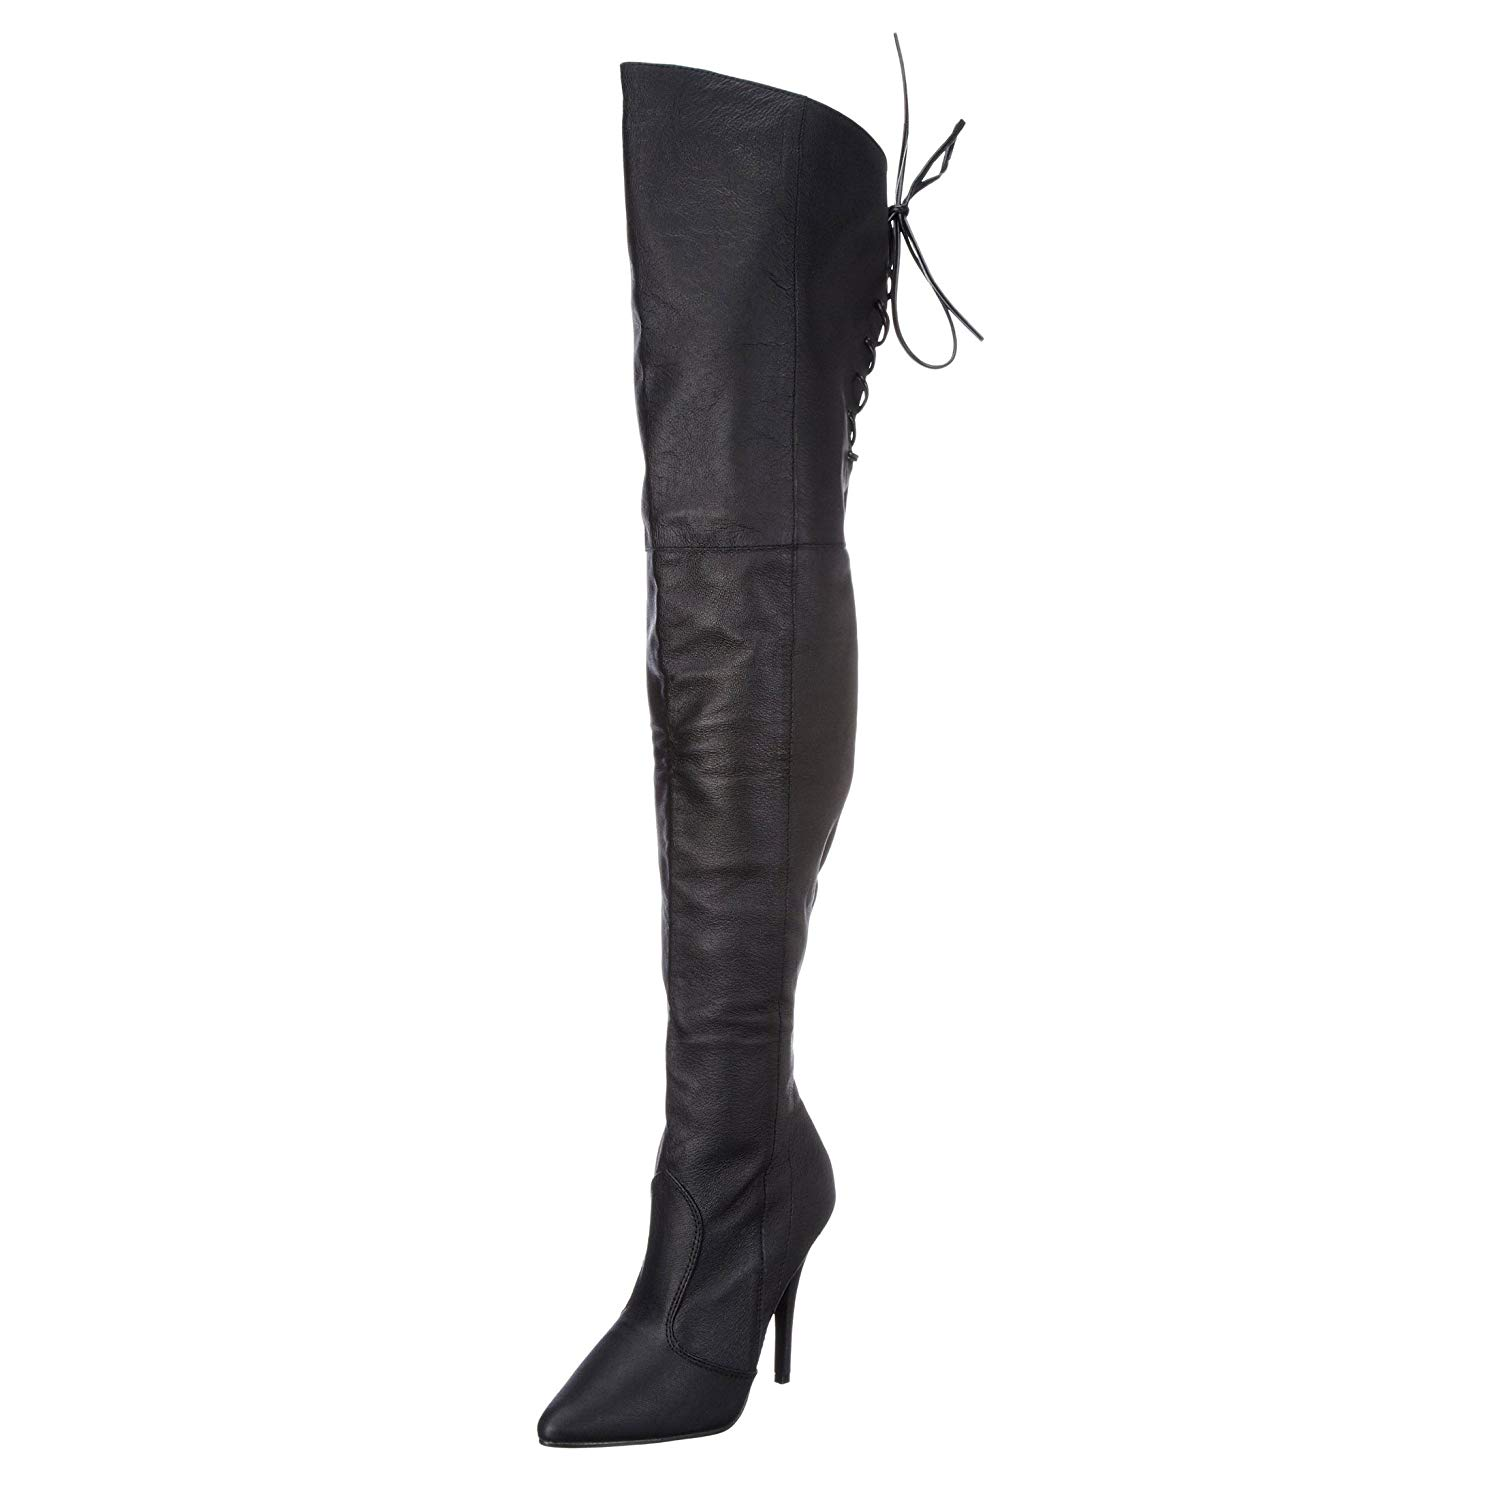 51563ca14 Summitfashions Womens Black Over The Knee Boots Thigh High Boots Side  Zipper 5 inch Heels